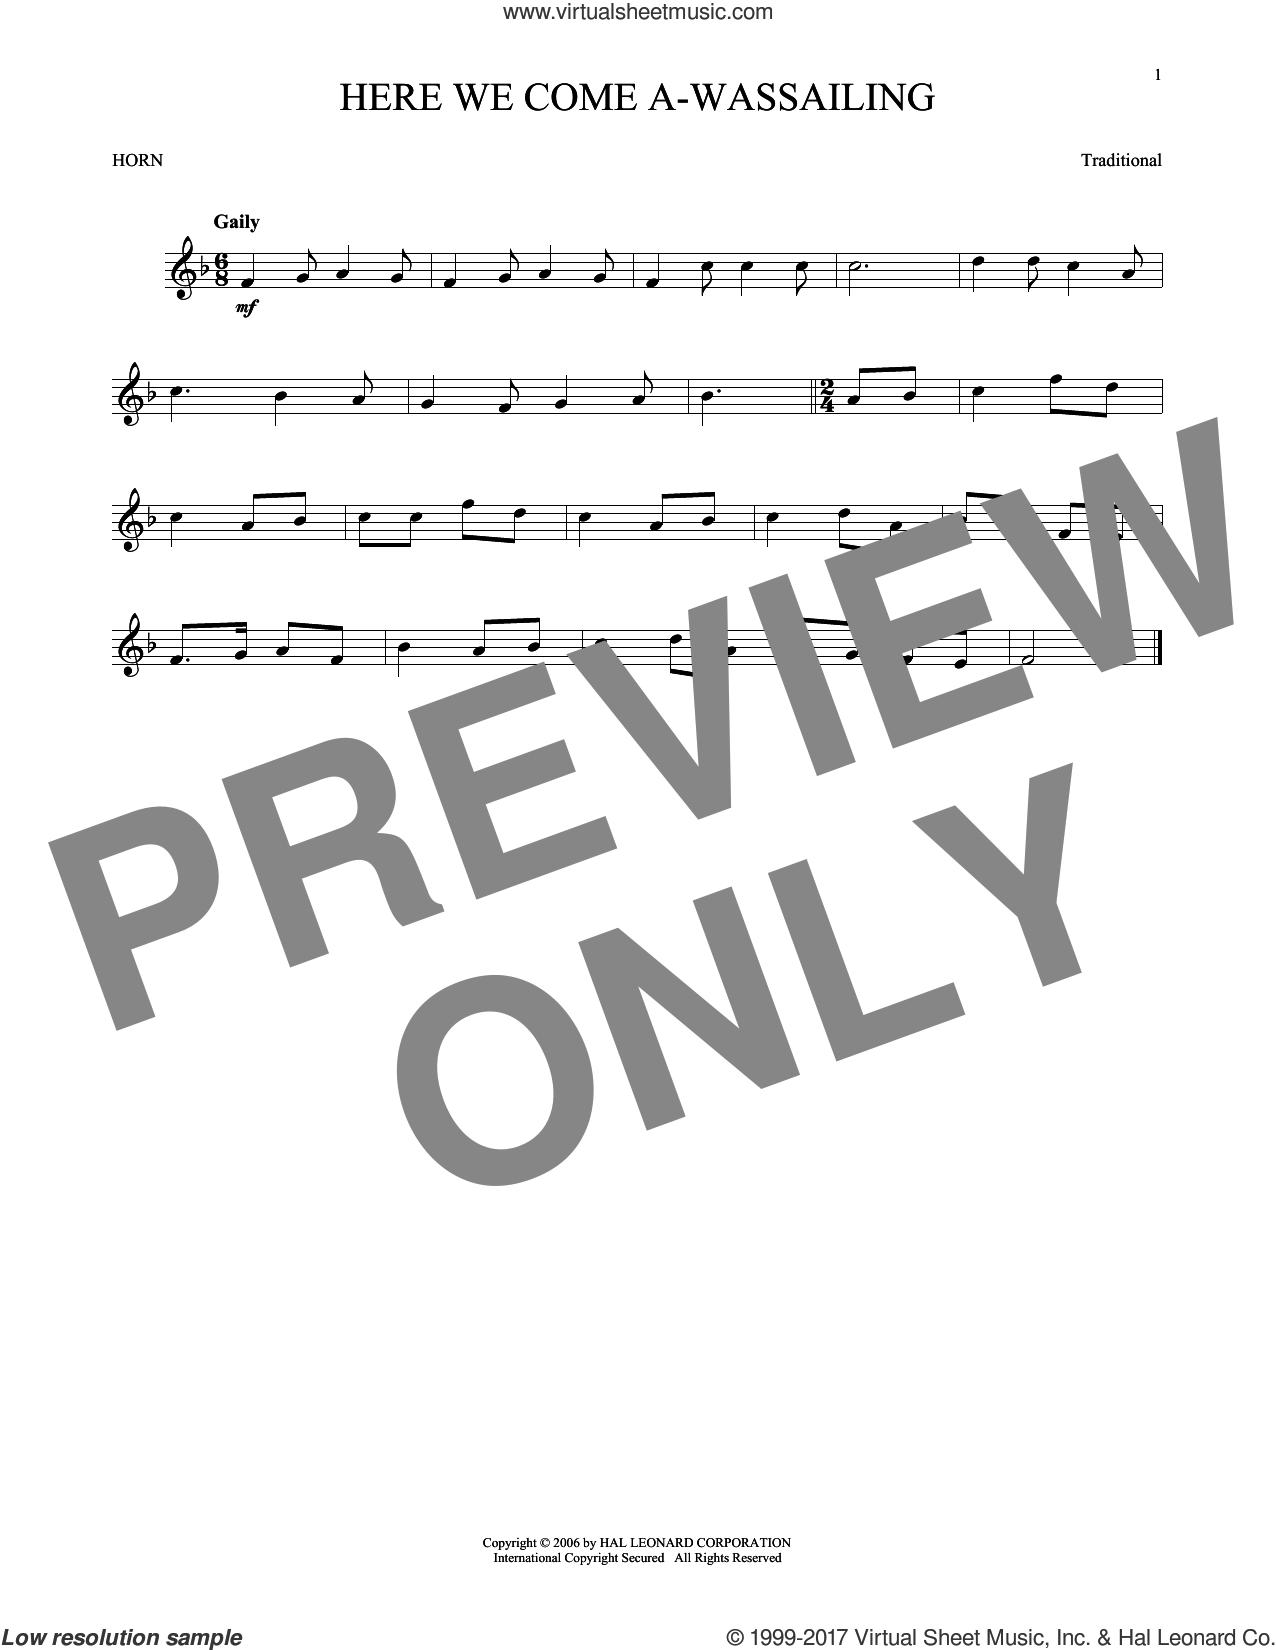 Here We Come A-Wassailing sheet music for horn solo, intermediate skill level